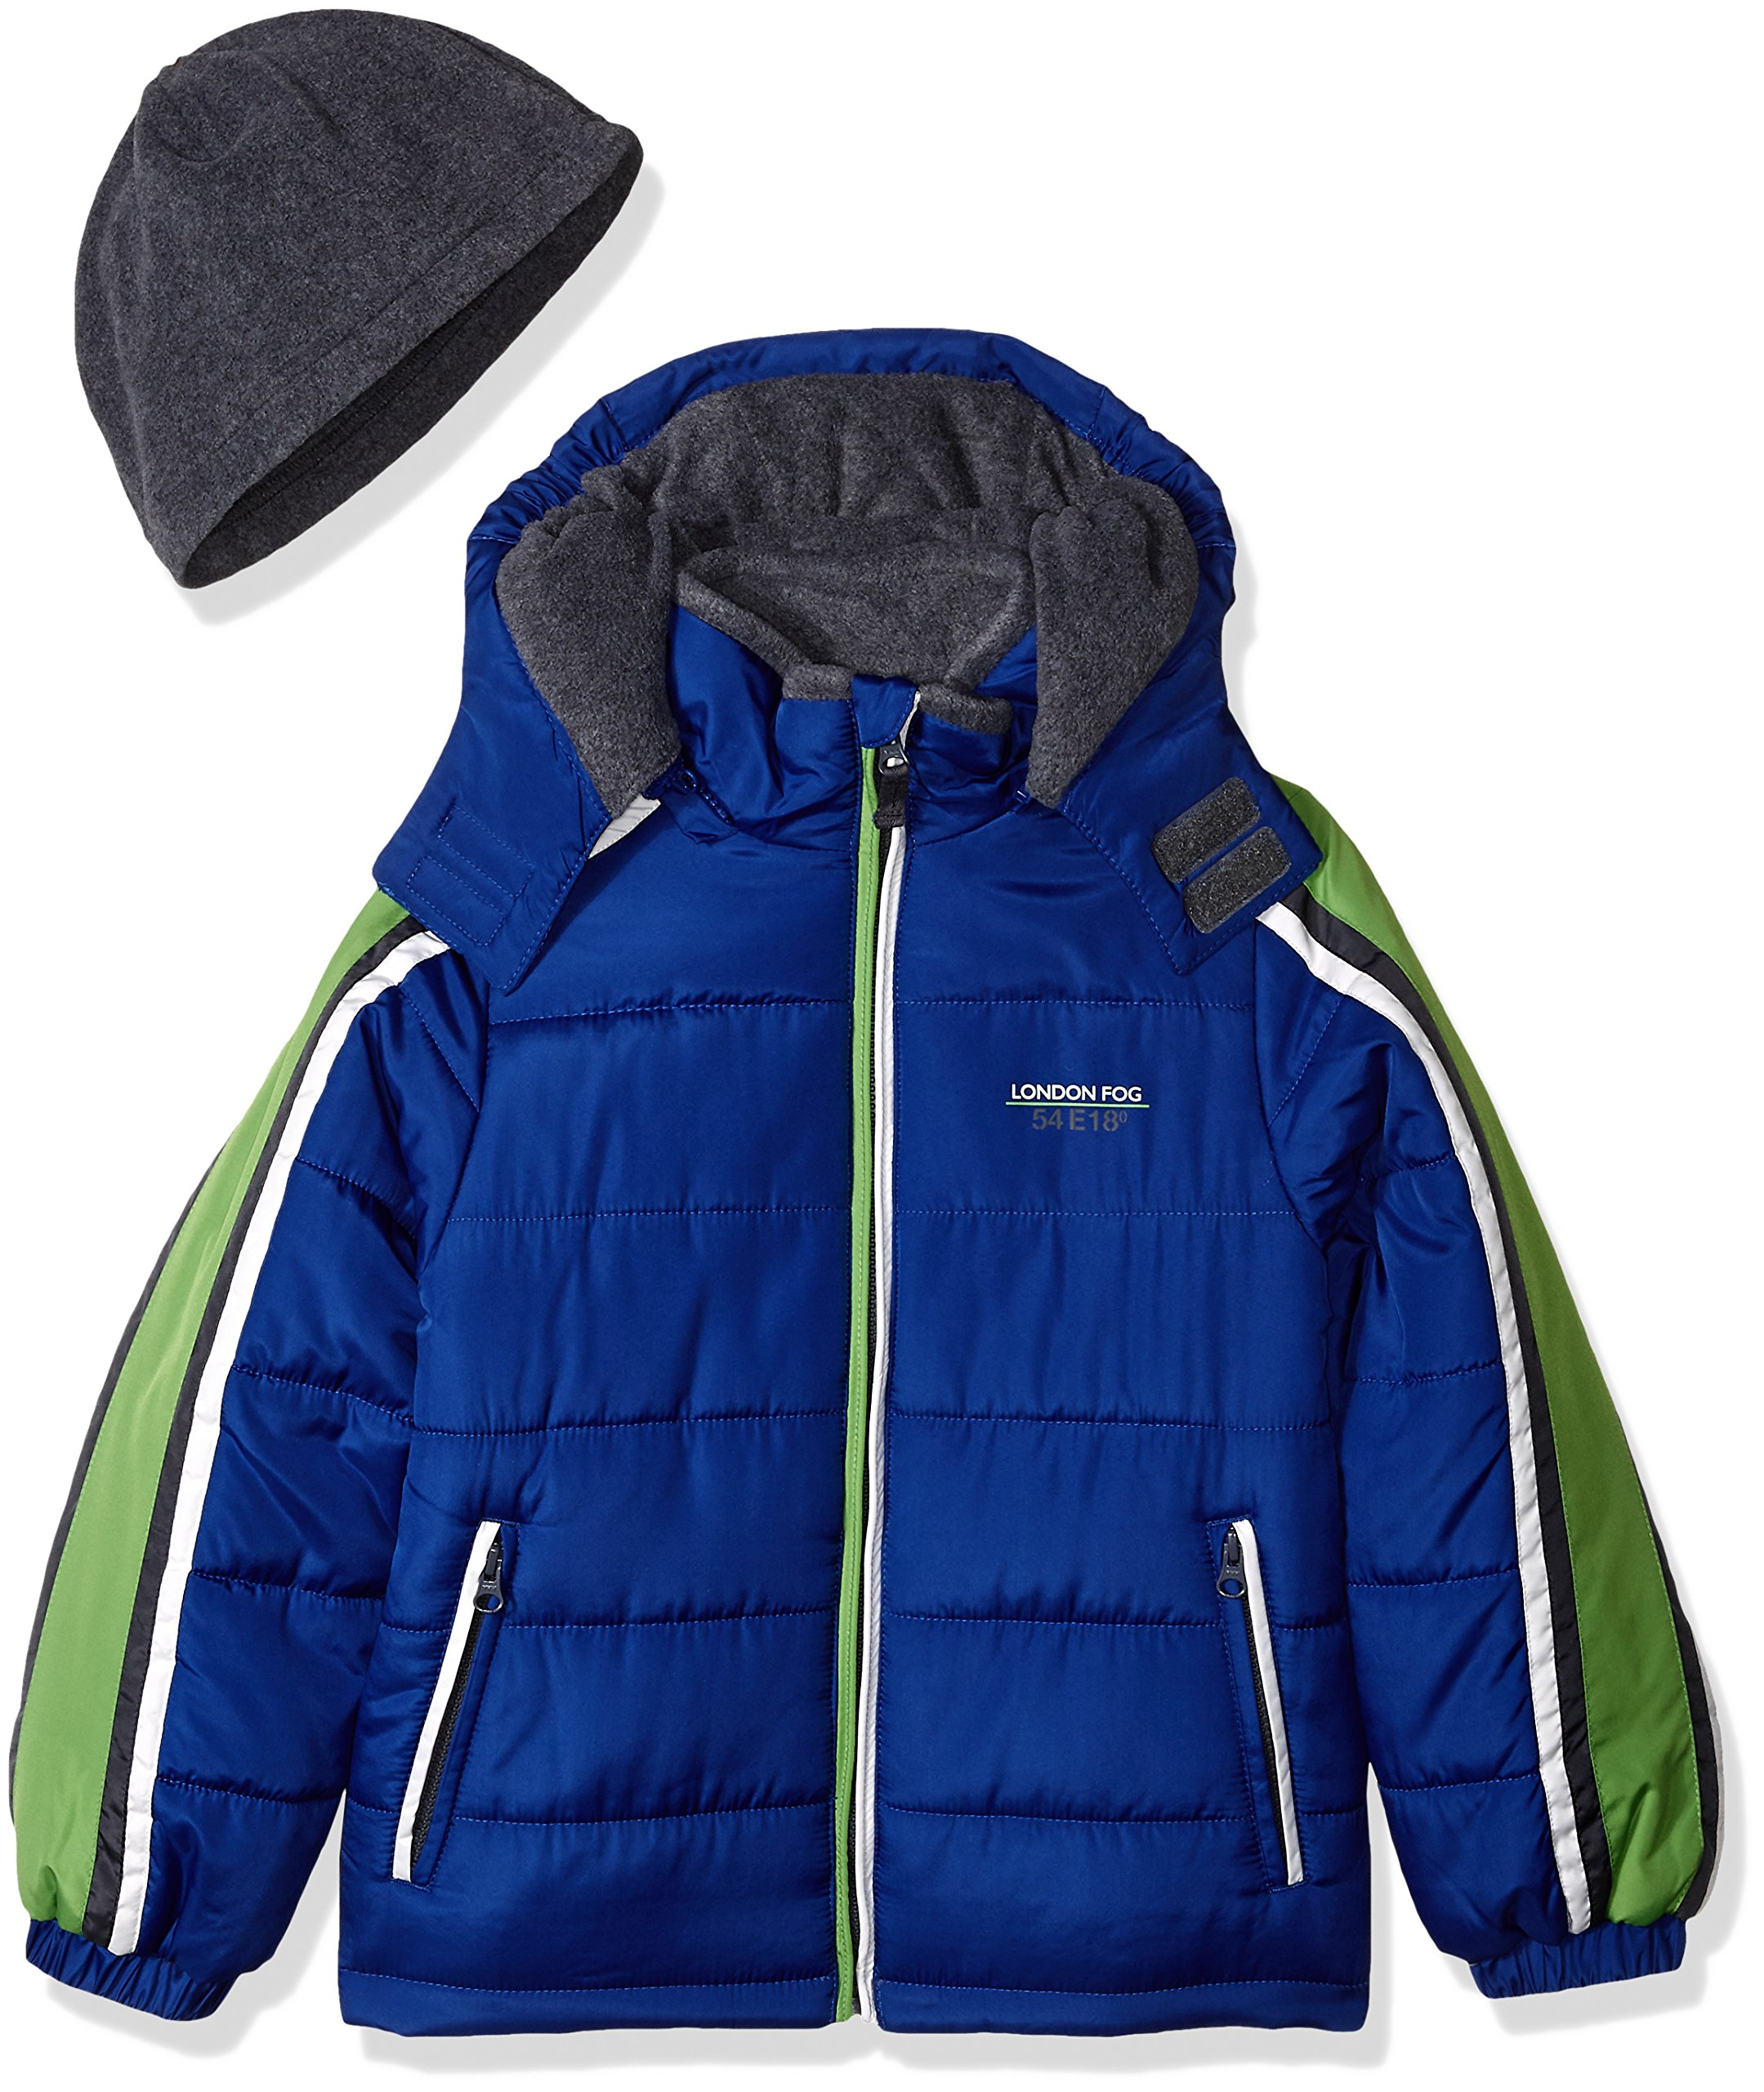 London Fog Little Boys' Active Heavyweight Jacket with Ski Cap, Real Blue, 5/6